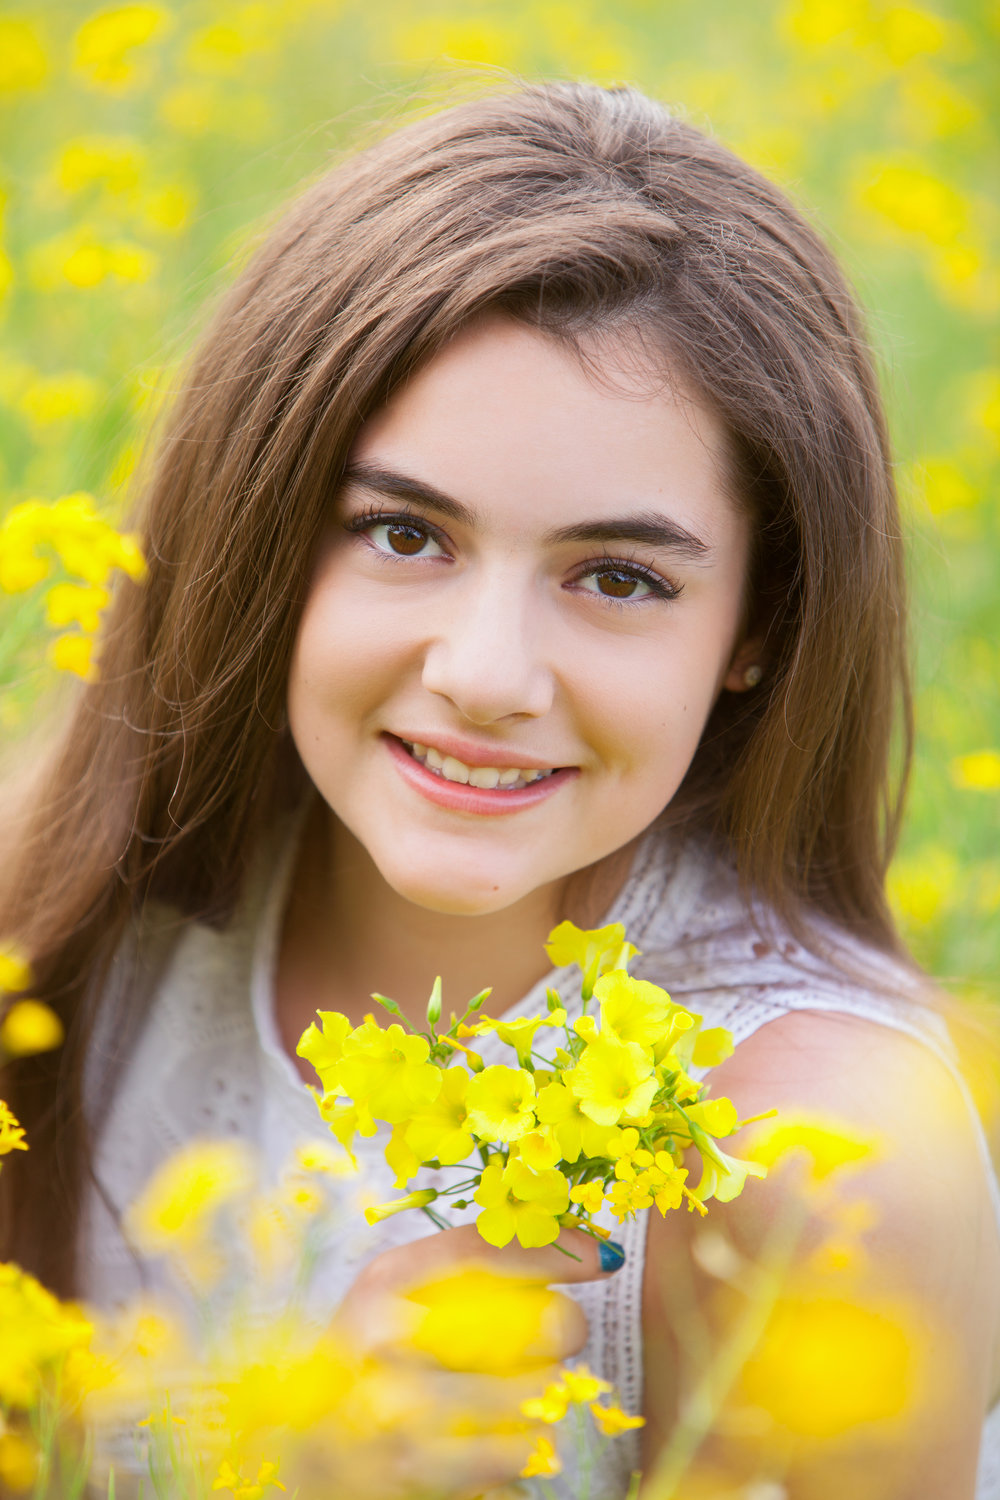 Pretty girl with long brown hair in the flowers